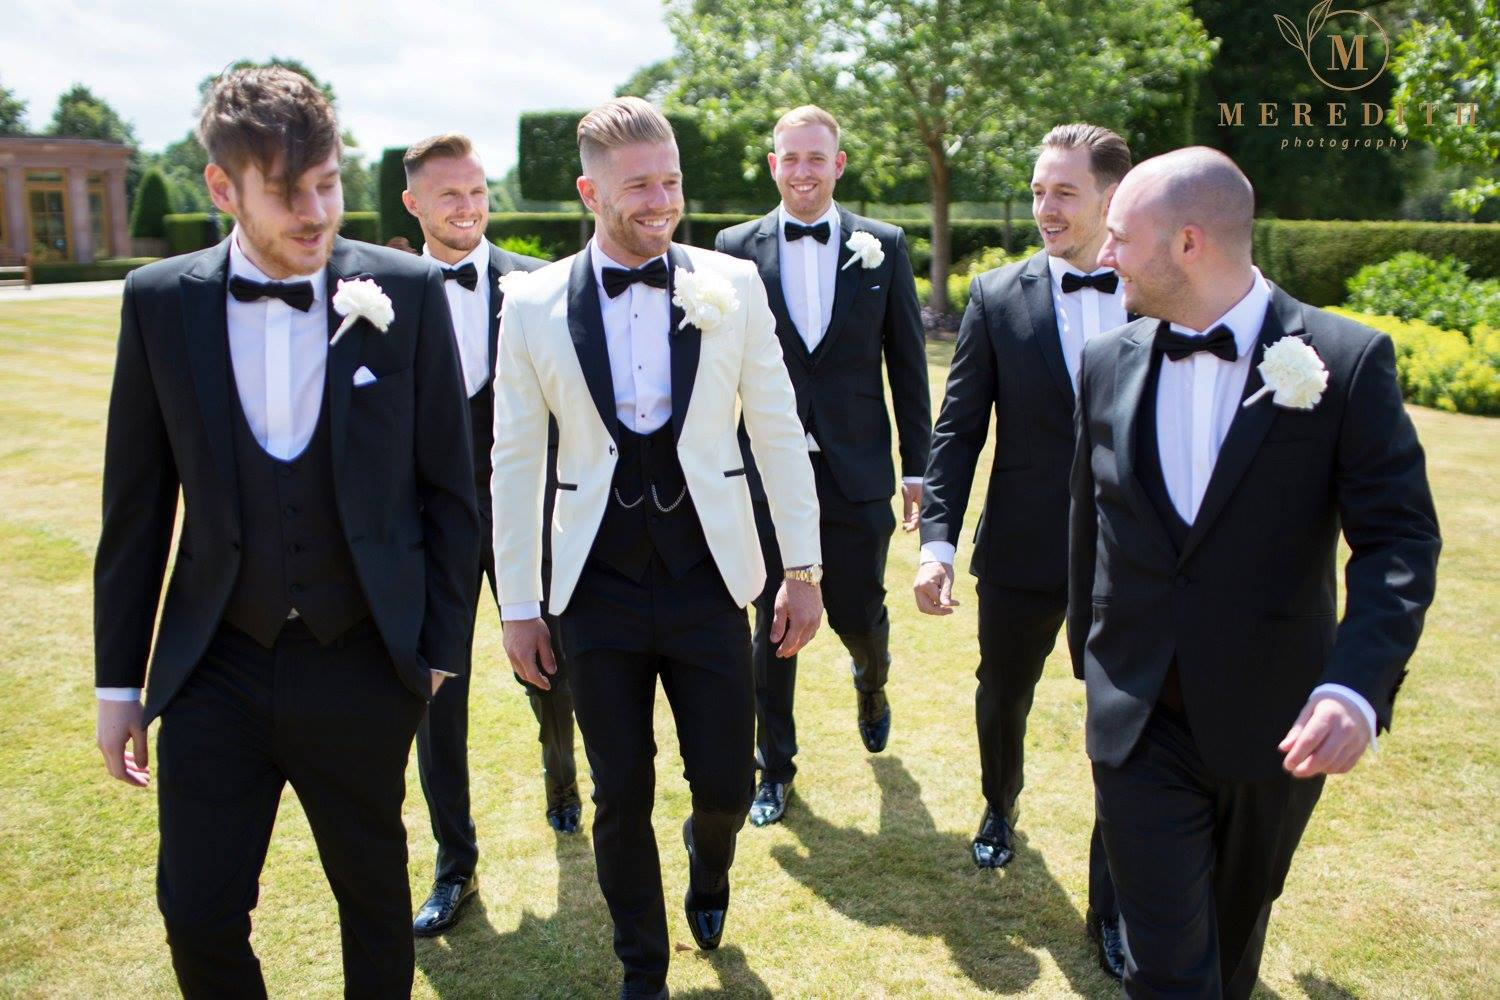 Adam & his groomsmen at Merrydale Manor wearing dinner suits